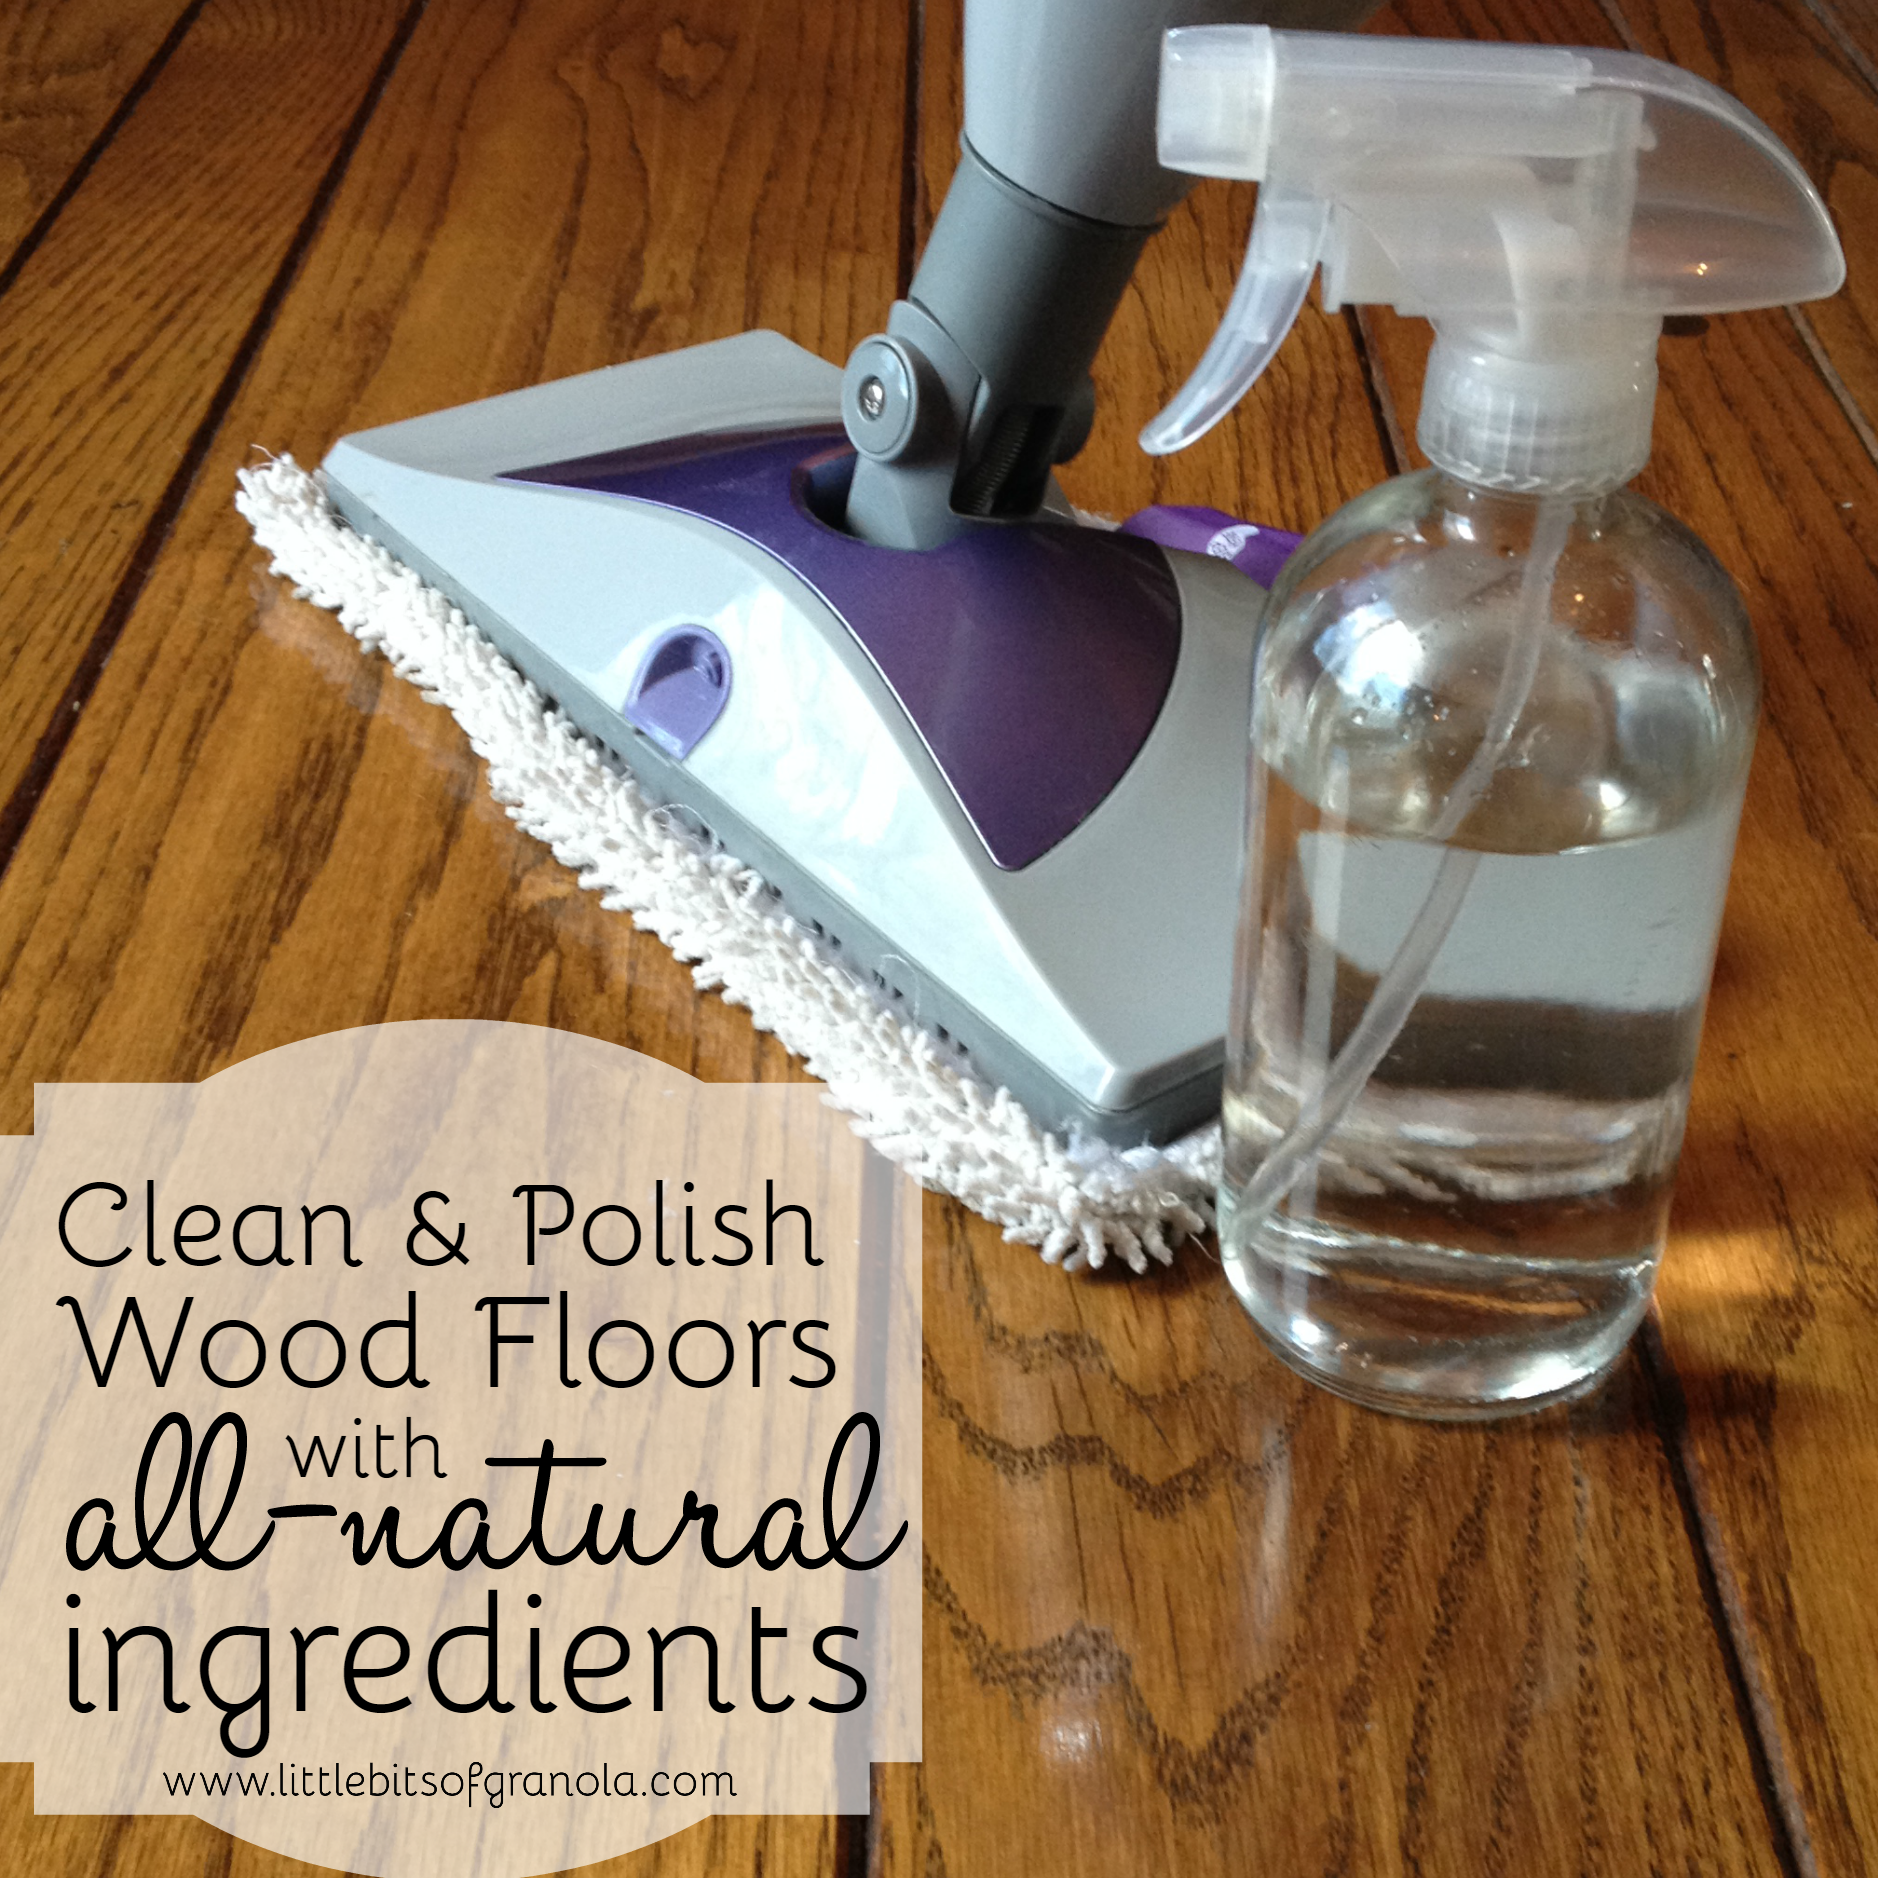 Diy wood floor cleaner and polish kristy 39 s cottage for Wood floor cleaner diy